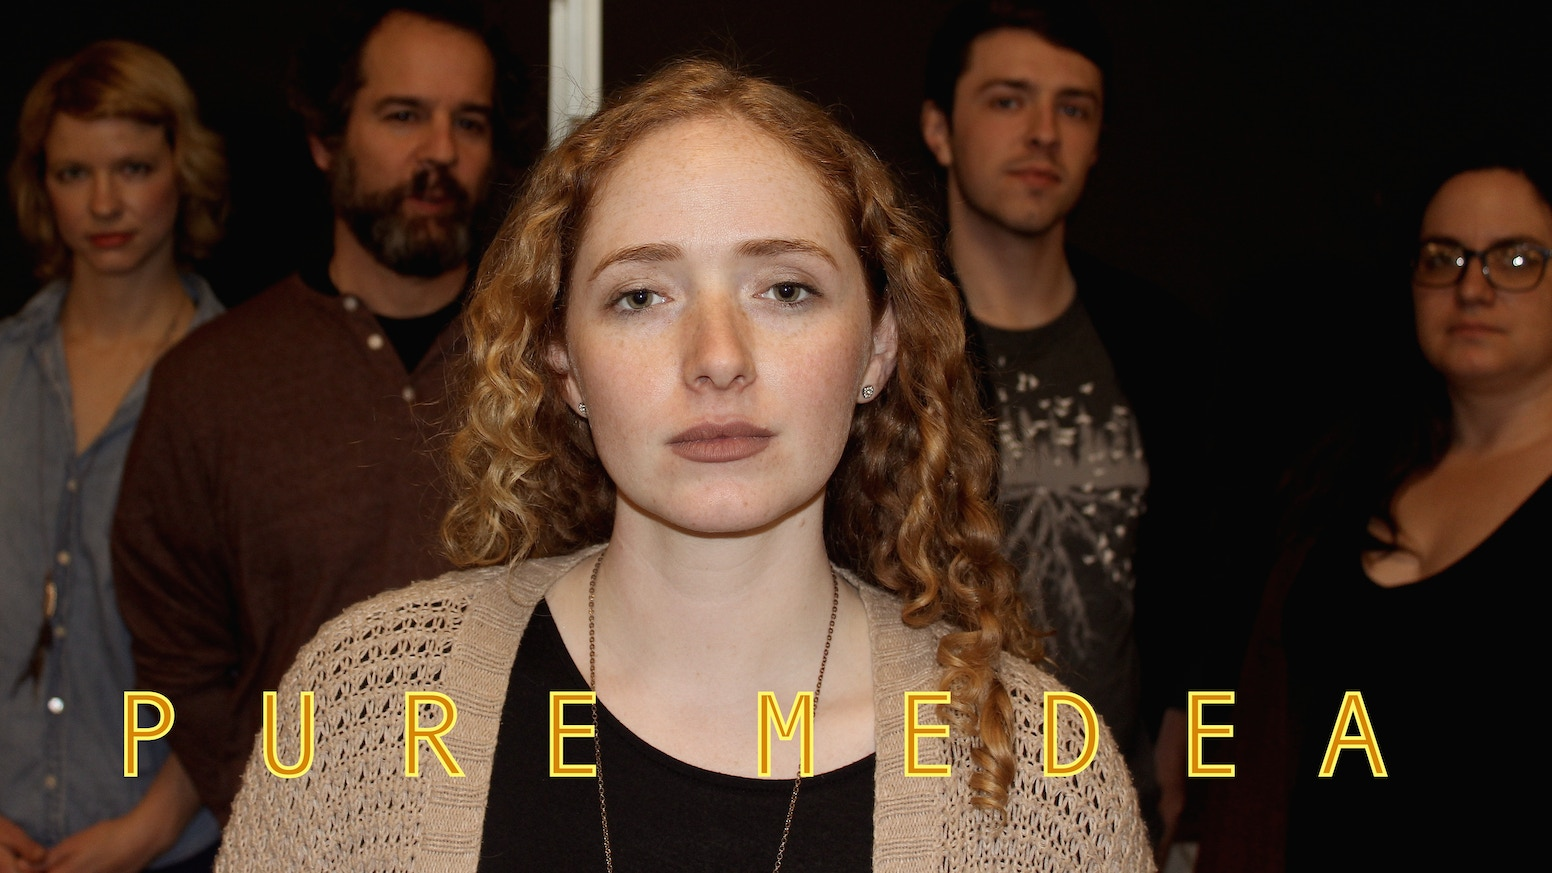 We're producing a play about a theater group rehearsing Euripides' Medea, and how the tragedy mirrors the inner lives of the actors.